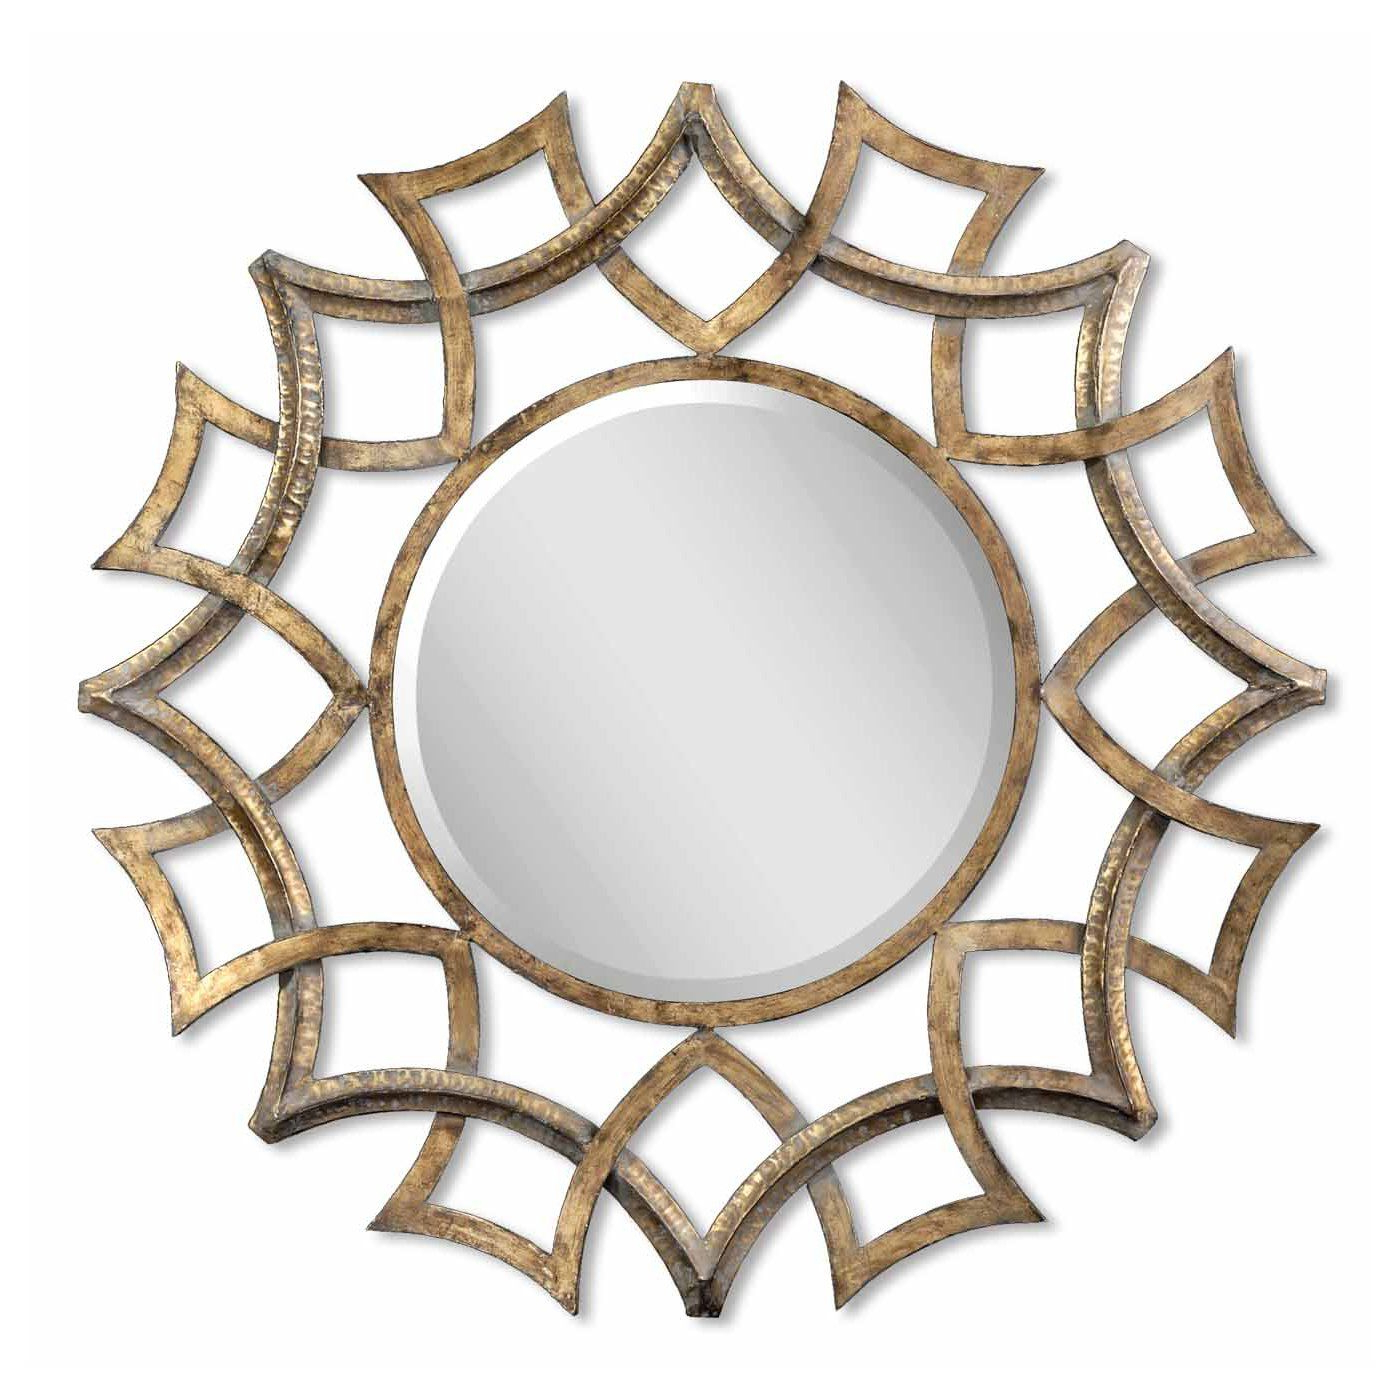 Tata Openwork Round Wall Mirrors For Most Popular Uttermost 12730 B Demarco Round Decorative Mirror, Antique Gold (View 15 of 20)